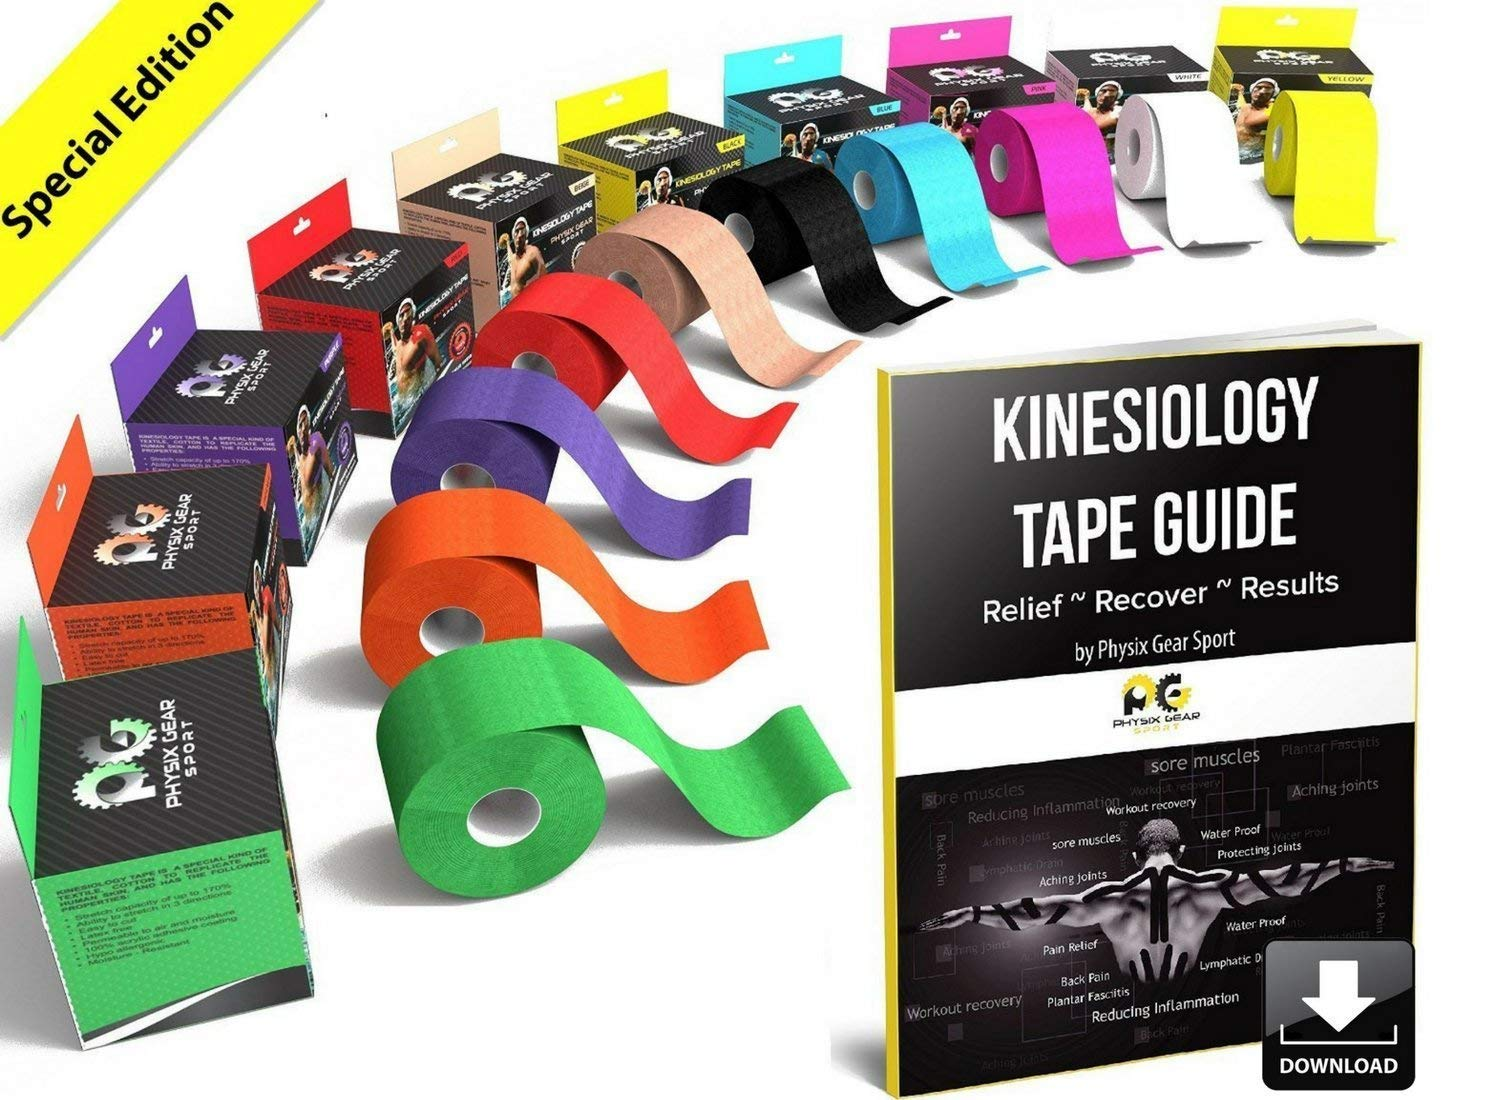 Physix Gear Sport Kinesiology Tape - Free Illustrated E-Guide - 16ft Uncut Roll - Best Pain Relief Adhesive for Muscles, Shin Splints Knee & Shoulder - 24/7 Waterproof Therapeutic Aid (1PK YEL)